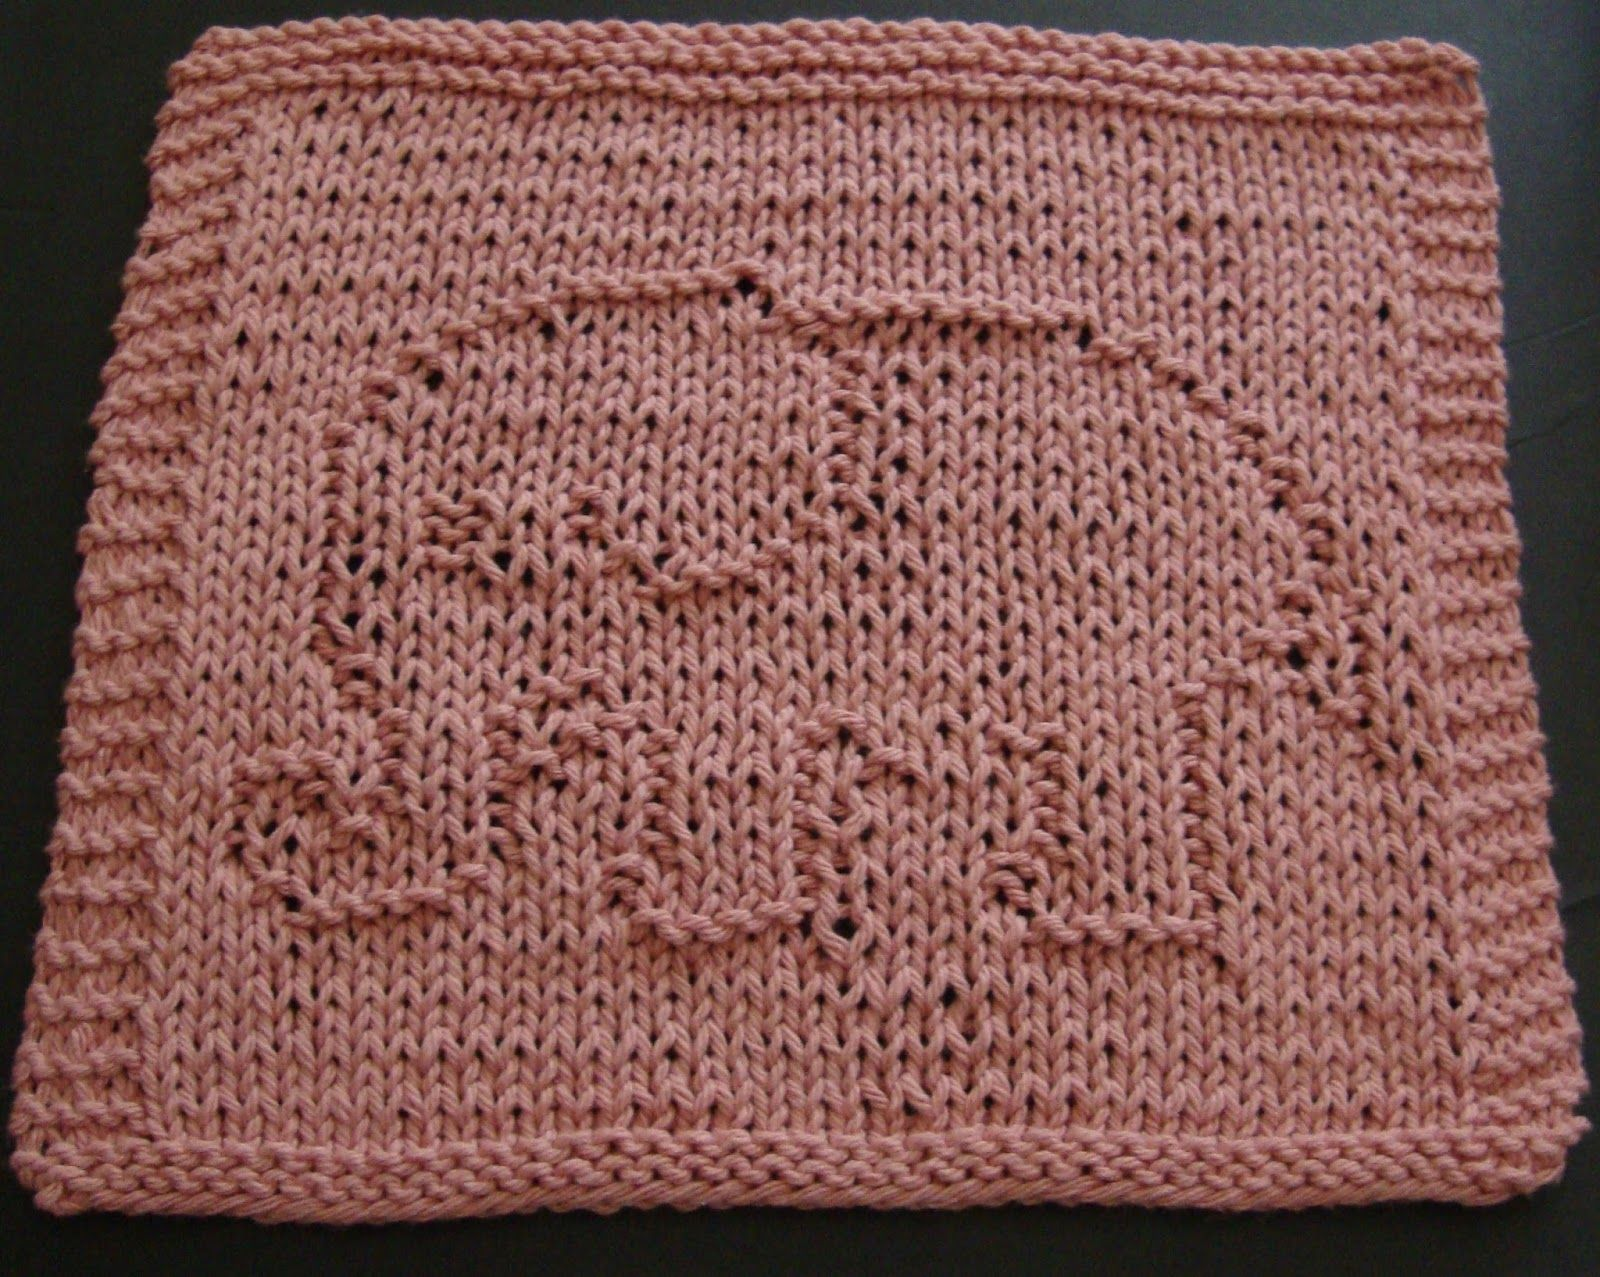 knitted elephant dishcloth pattern | DigKnitty Designs: Another ...